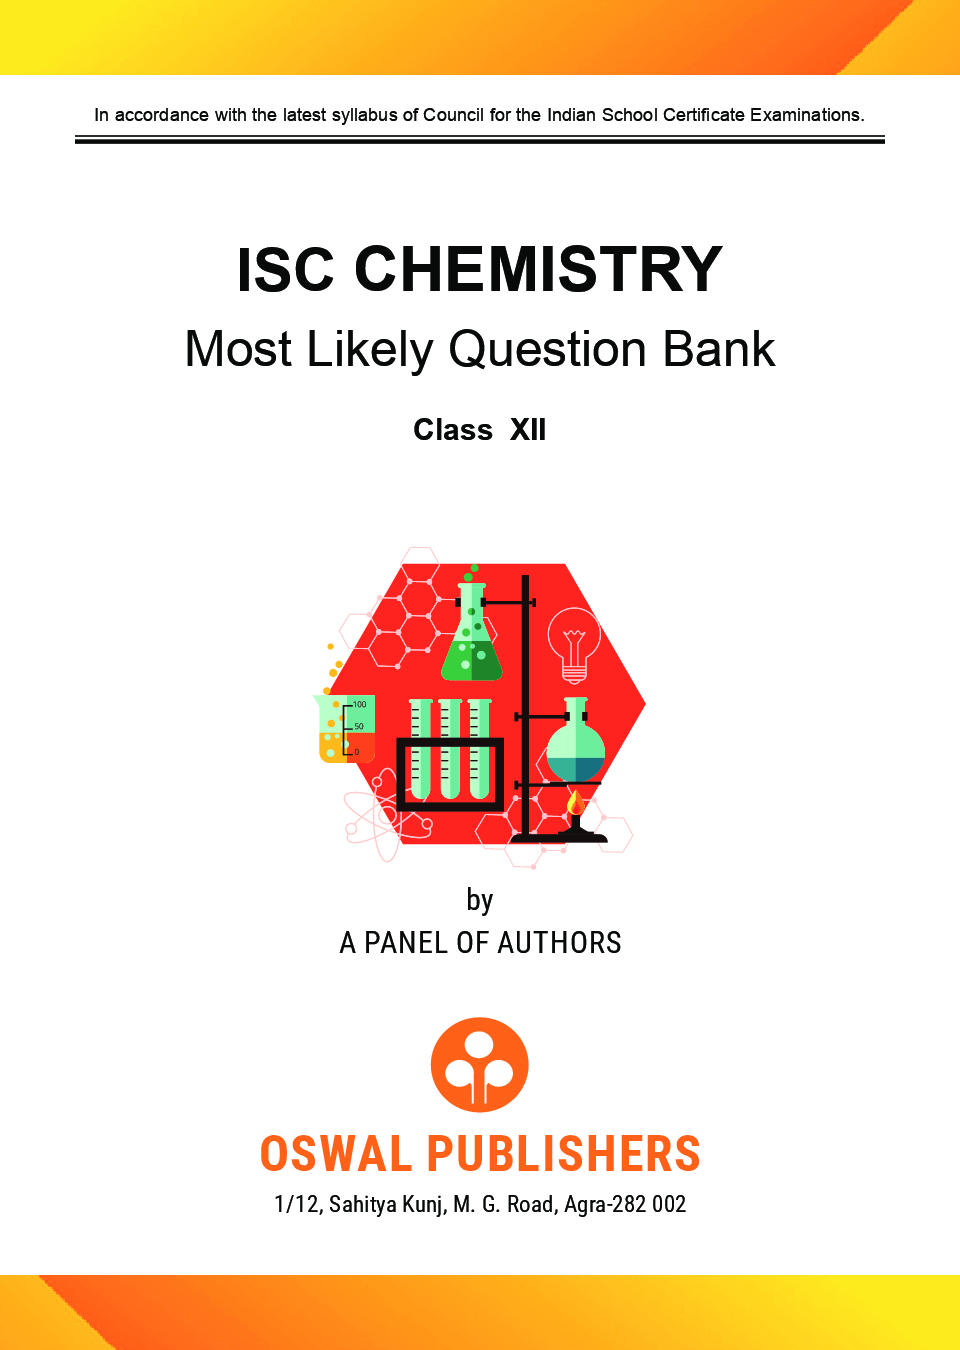 Oswal ISC Most Likely Question Bank Category & Chapterwise For Class XII Chemistry (For 2020 Exam) - Page 4